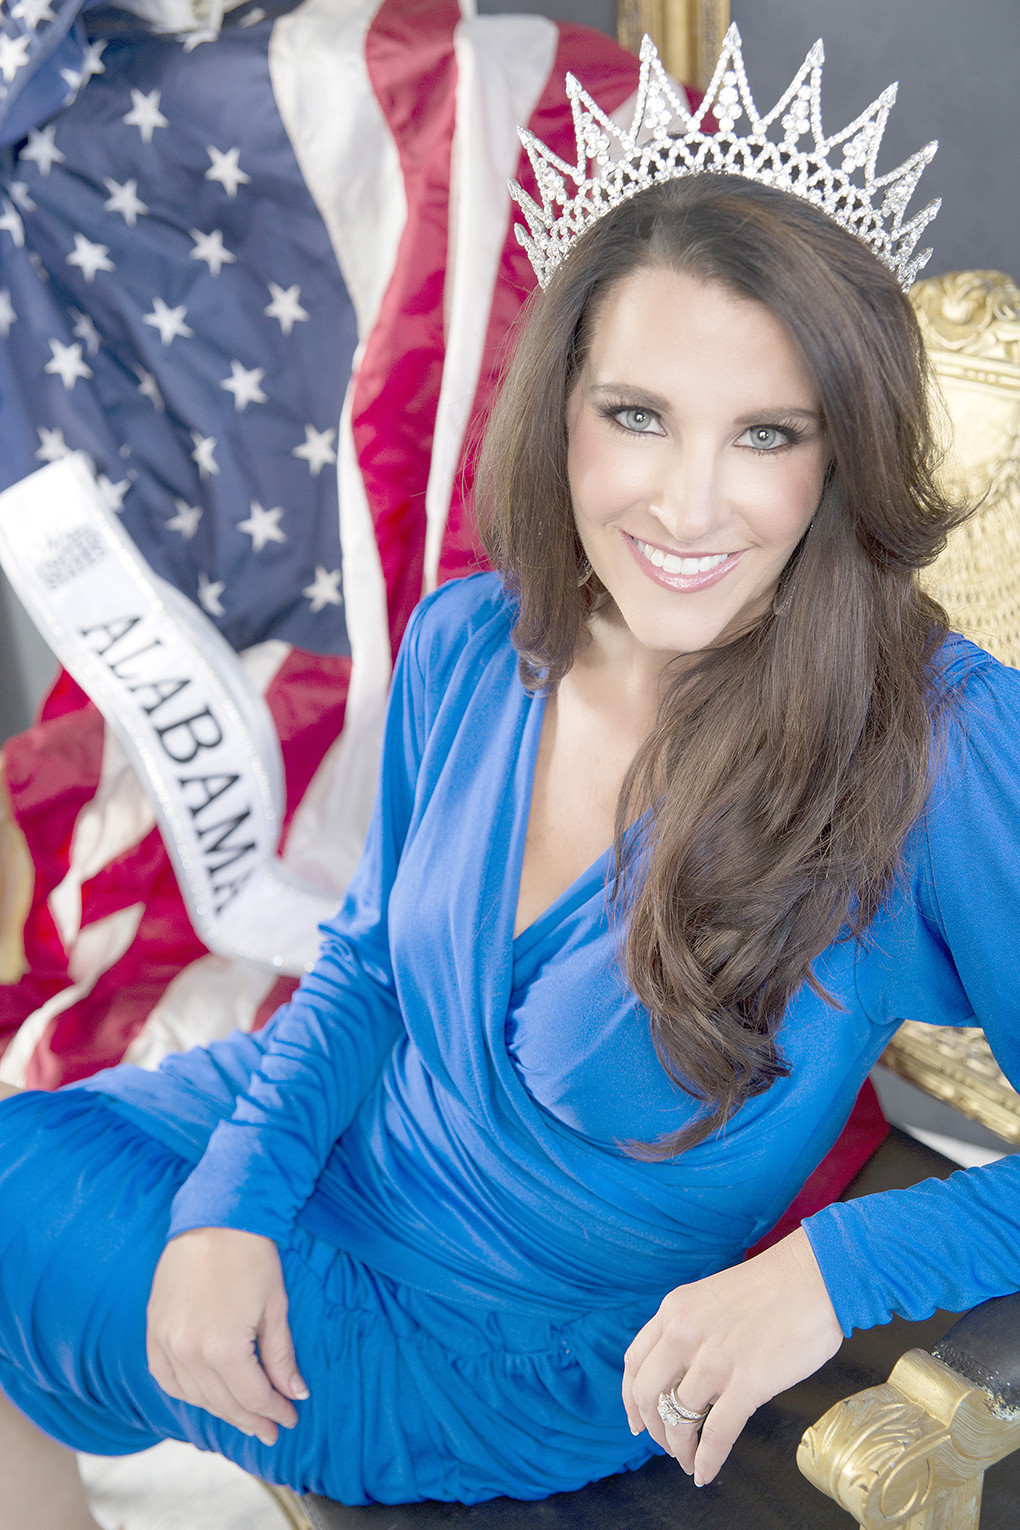 Joeletta Barrentine, an attorney in Dora, was crowned the 2016 Mrs. Alabama in May. She will compete in August at the Mrs. United States Pageant in Las Vegas. Photo Special to the Eagle